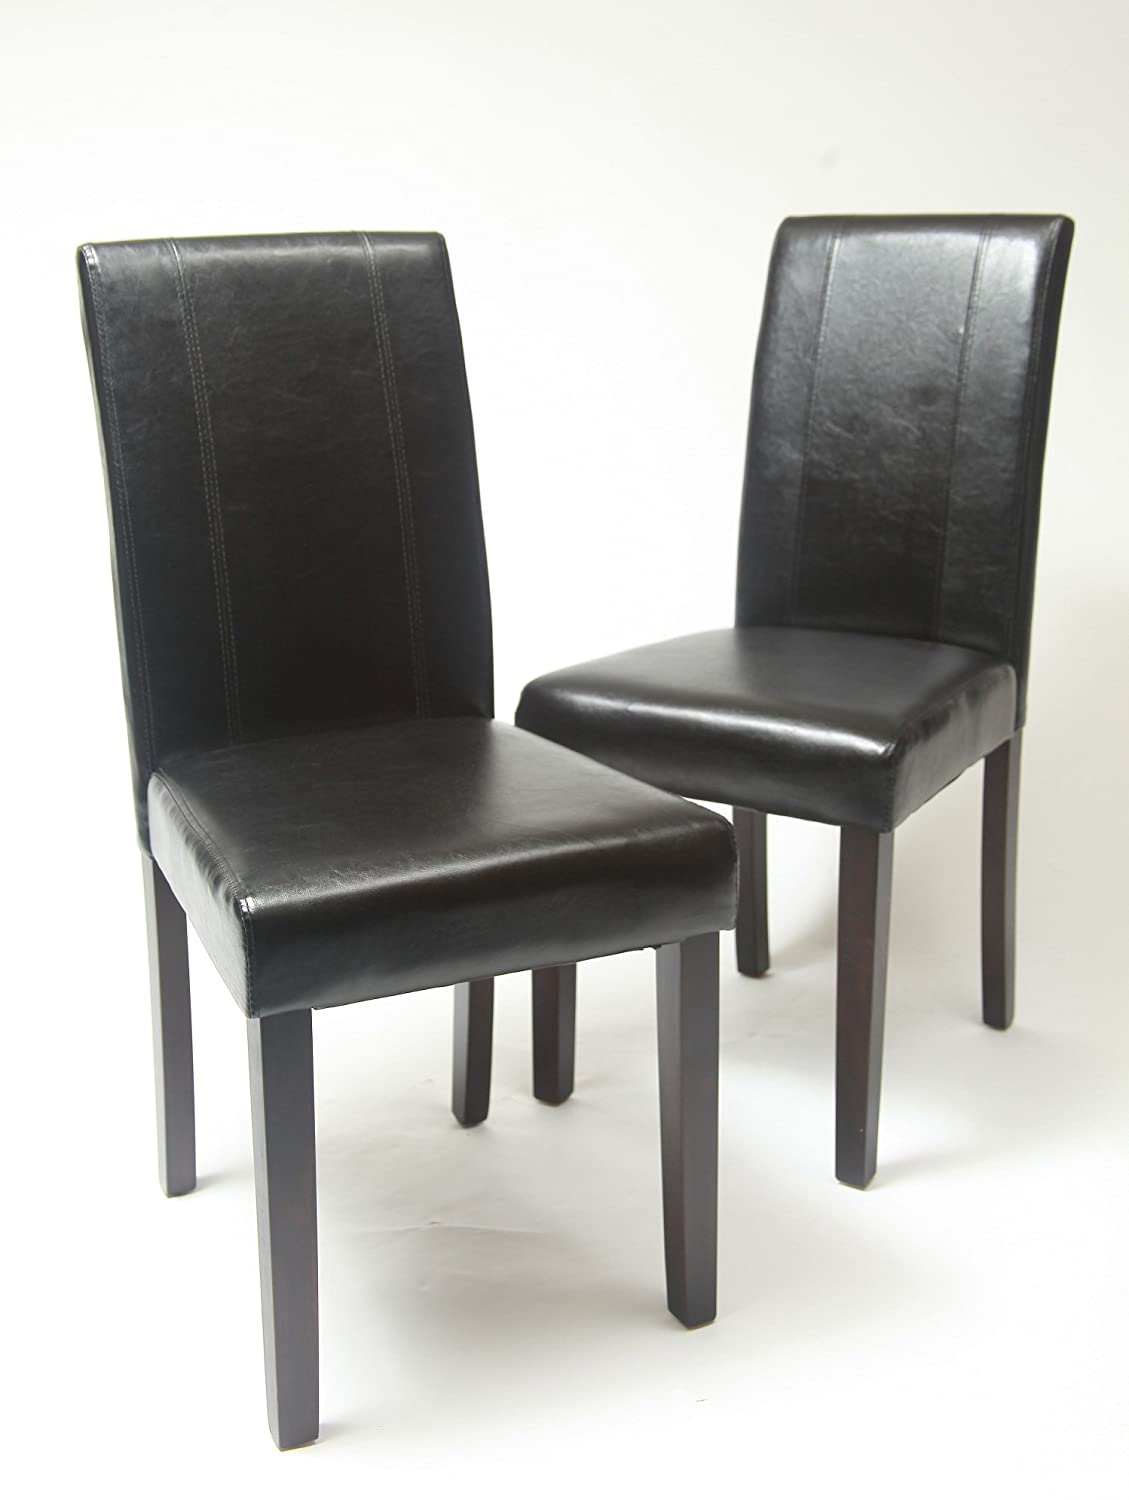 big kitchen chairs for heavy people amazon kitchen chairs Roundhill Solid Wood Padded Chair